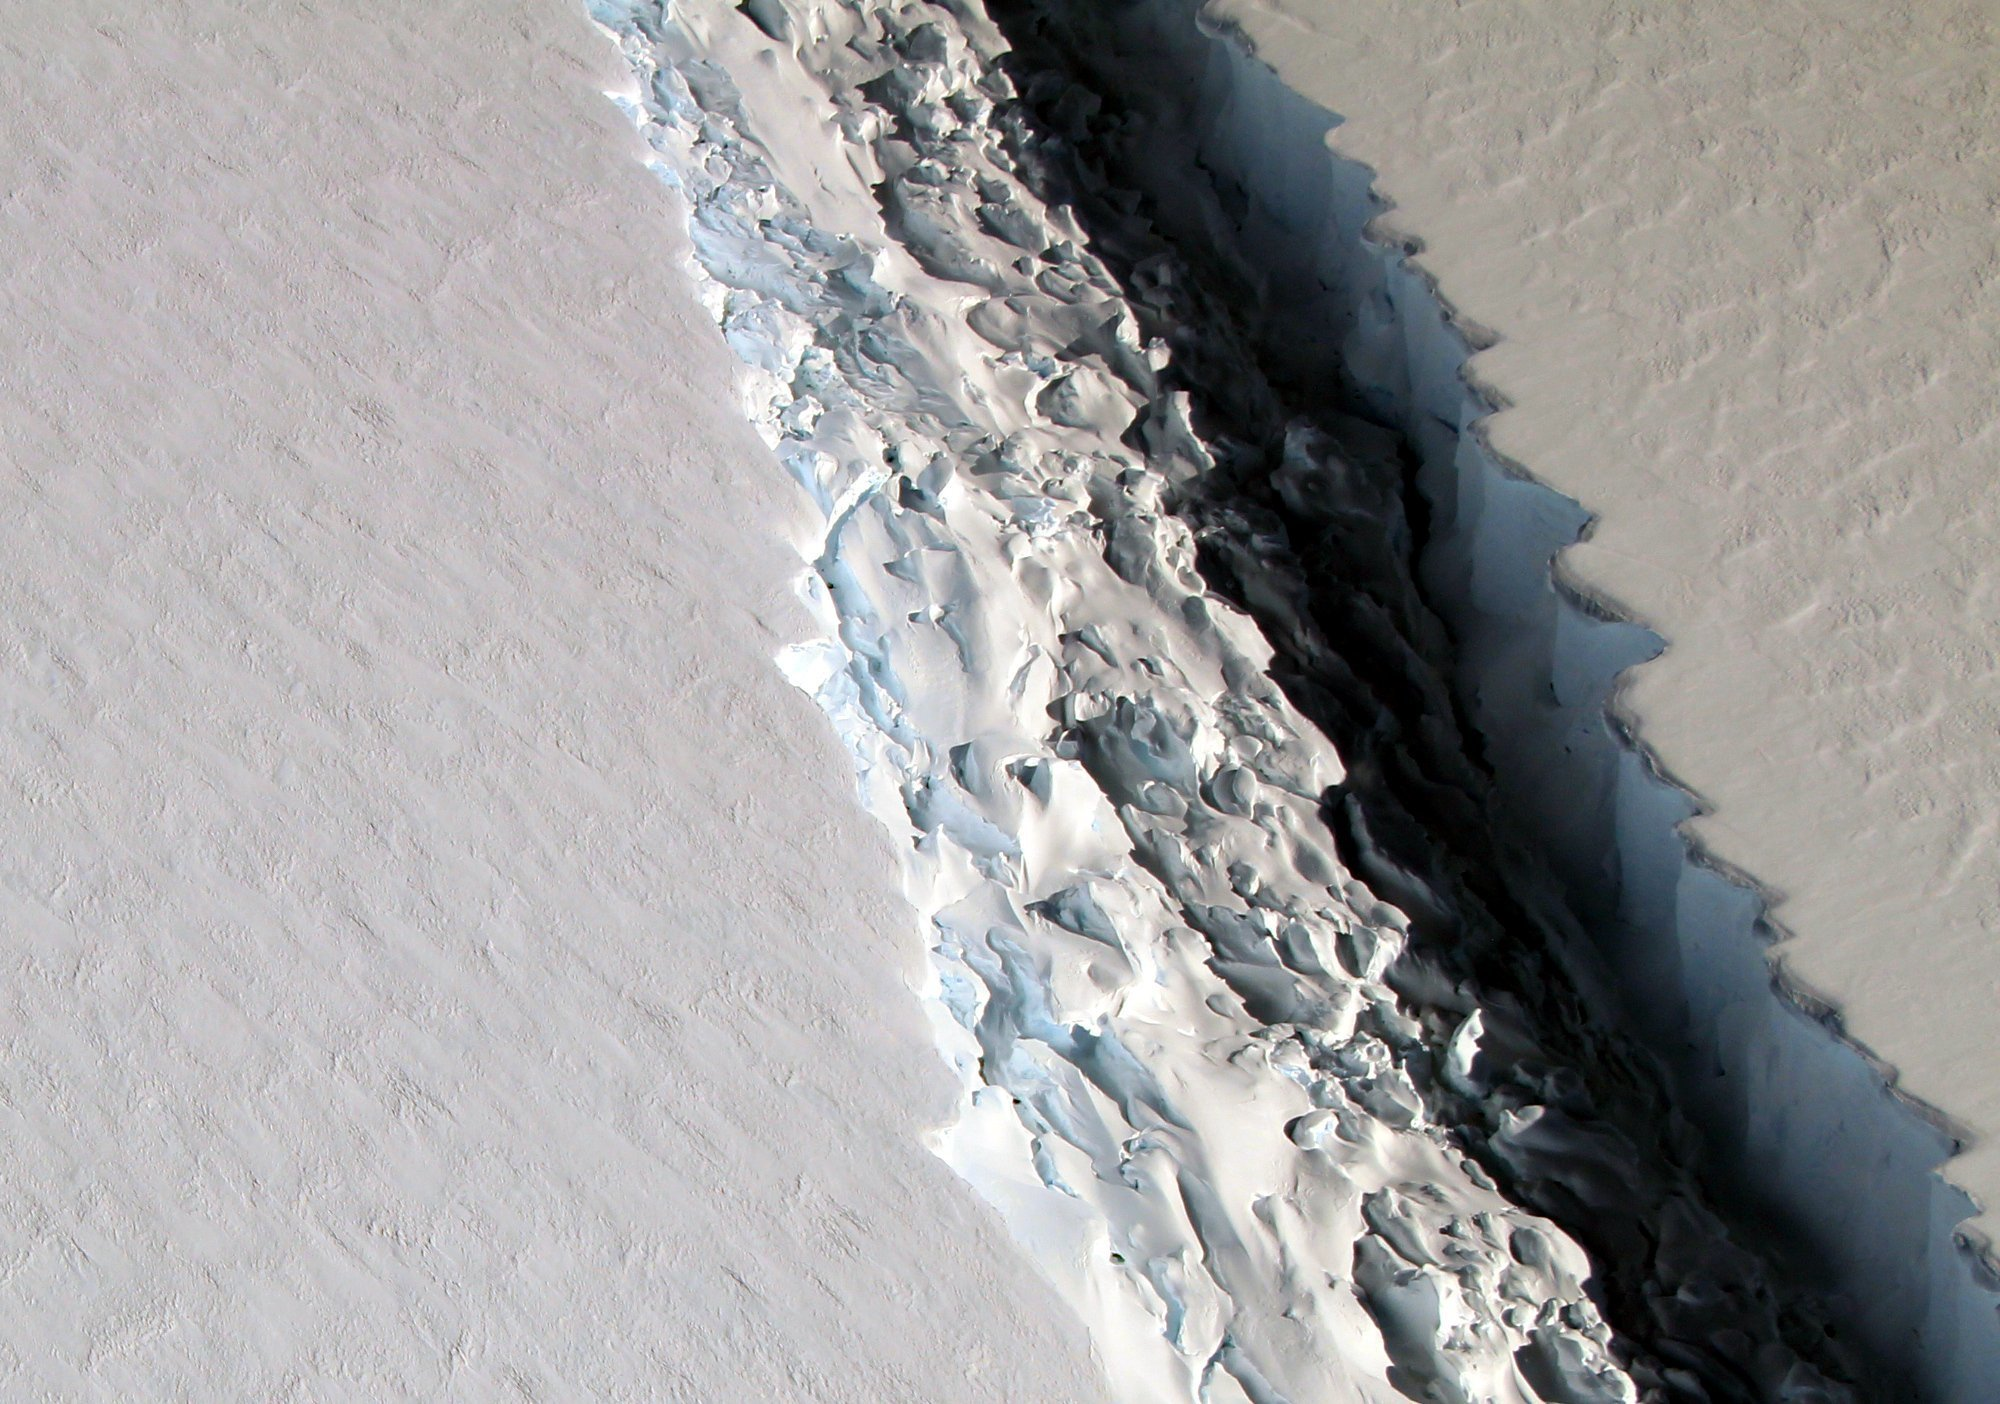 Glacier's collapse in South Pole may leave coastal towns submerged